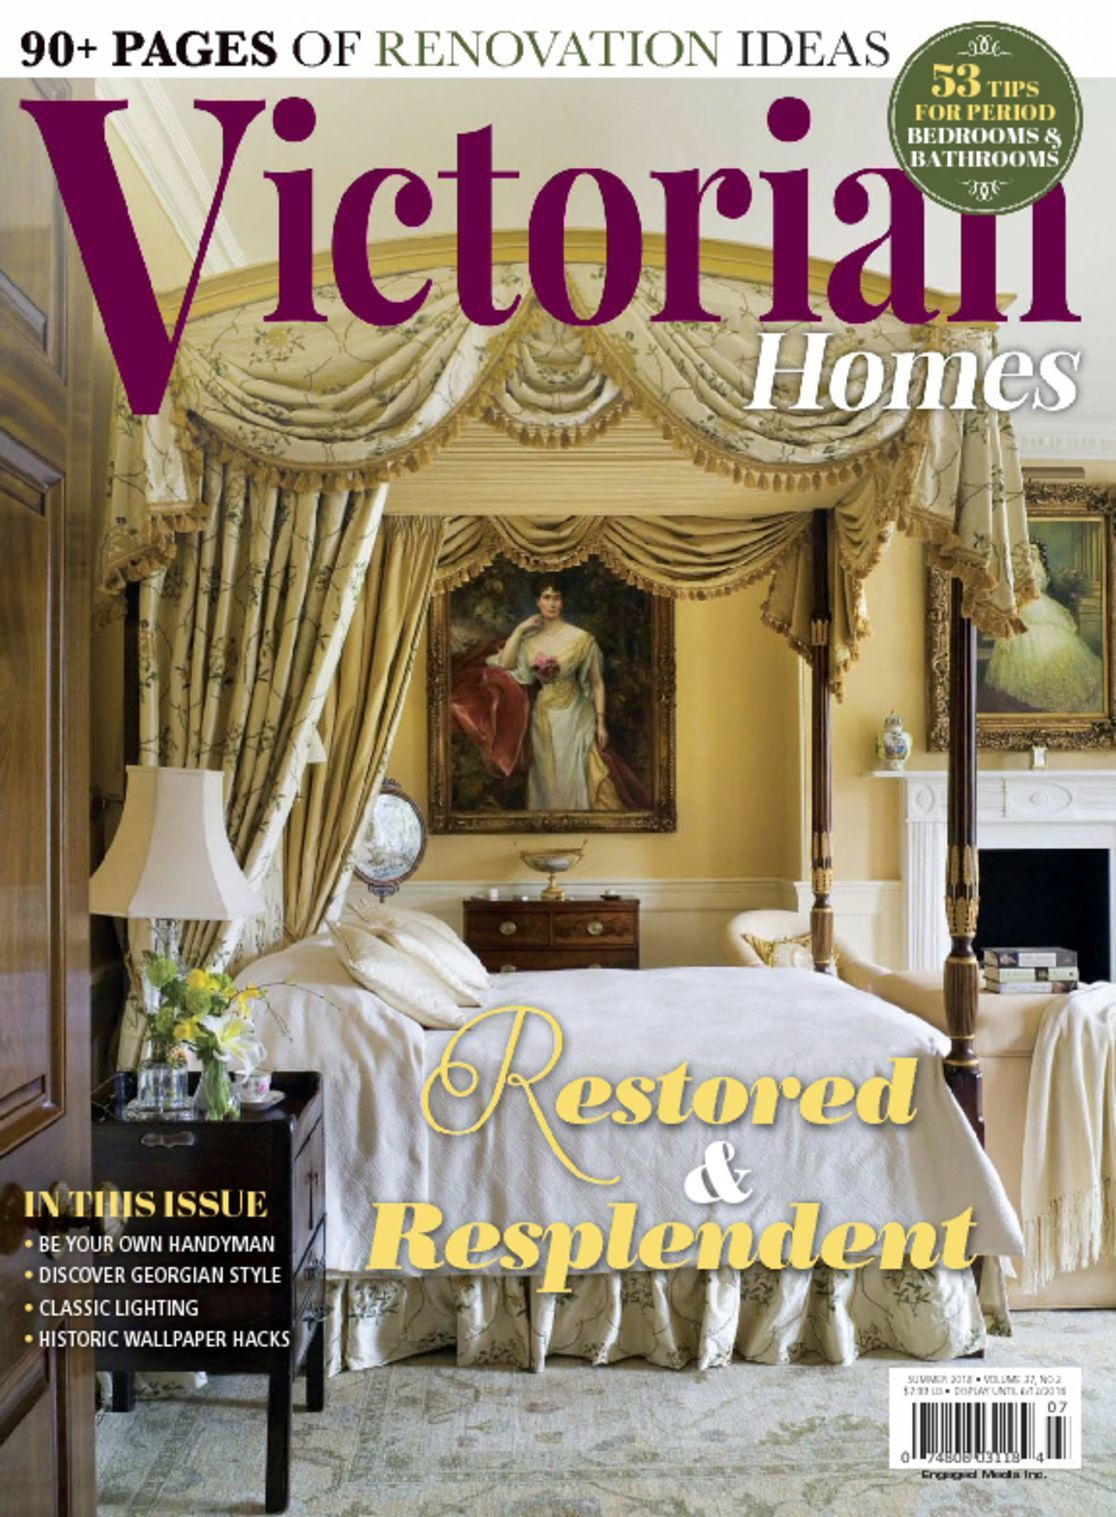 756 best images about Victoria.. on Pinterest  Victorian Magazine Covers